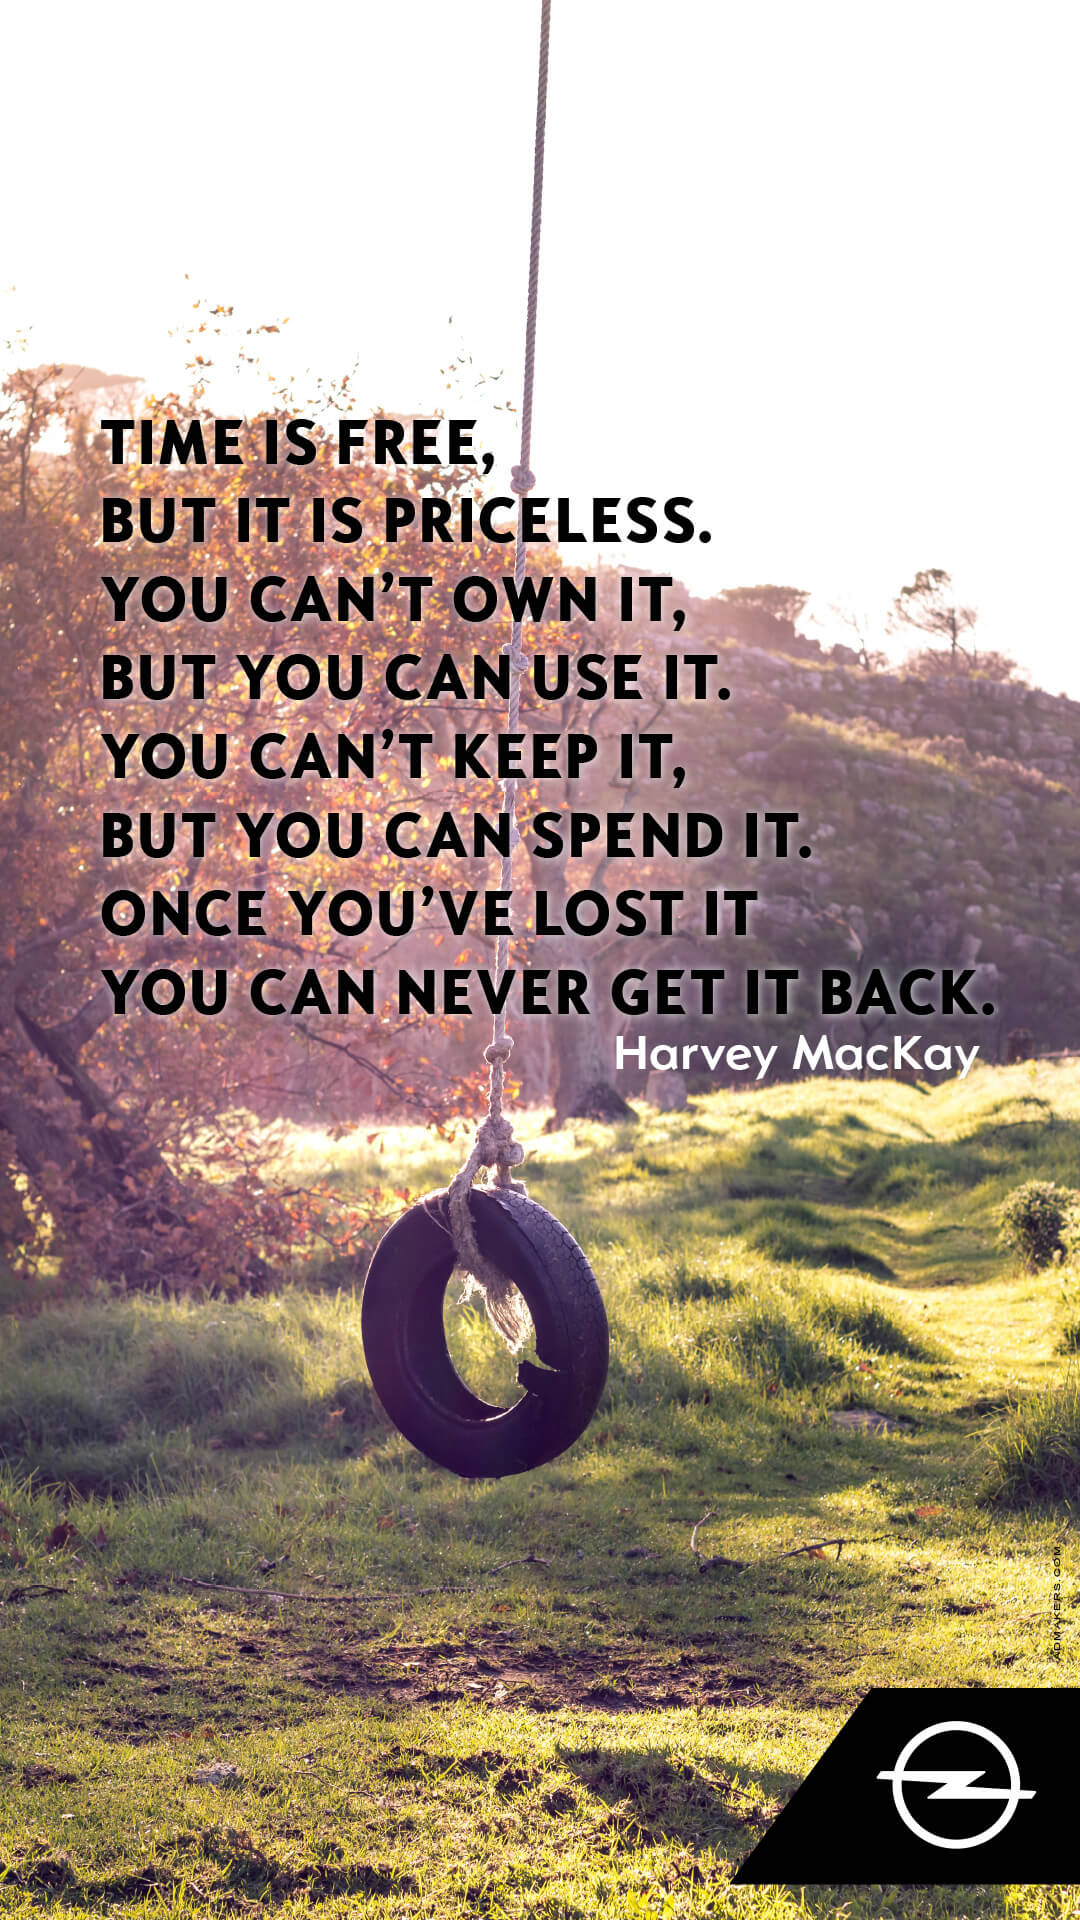 Time is free, but it is priceless. You can't own it, but you can use it. You can't keep it, but you can spend it. Once you've lost it, you can never get it back.